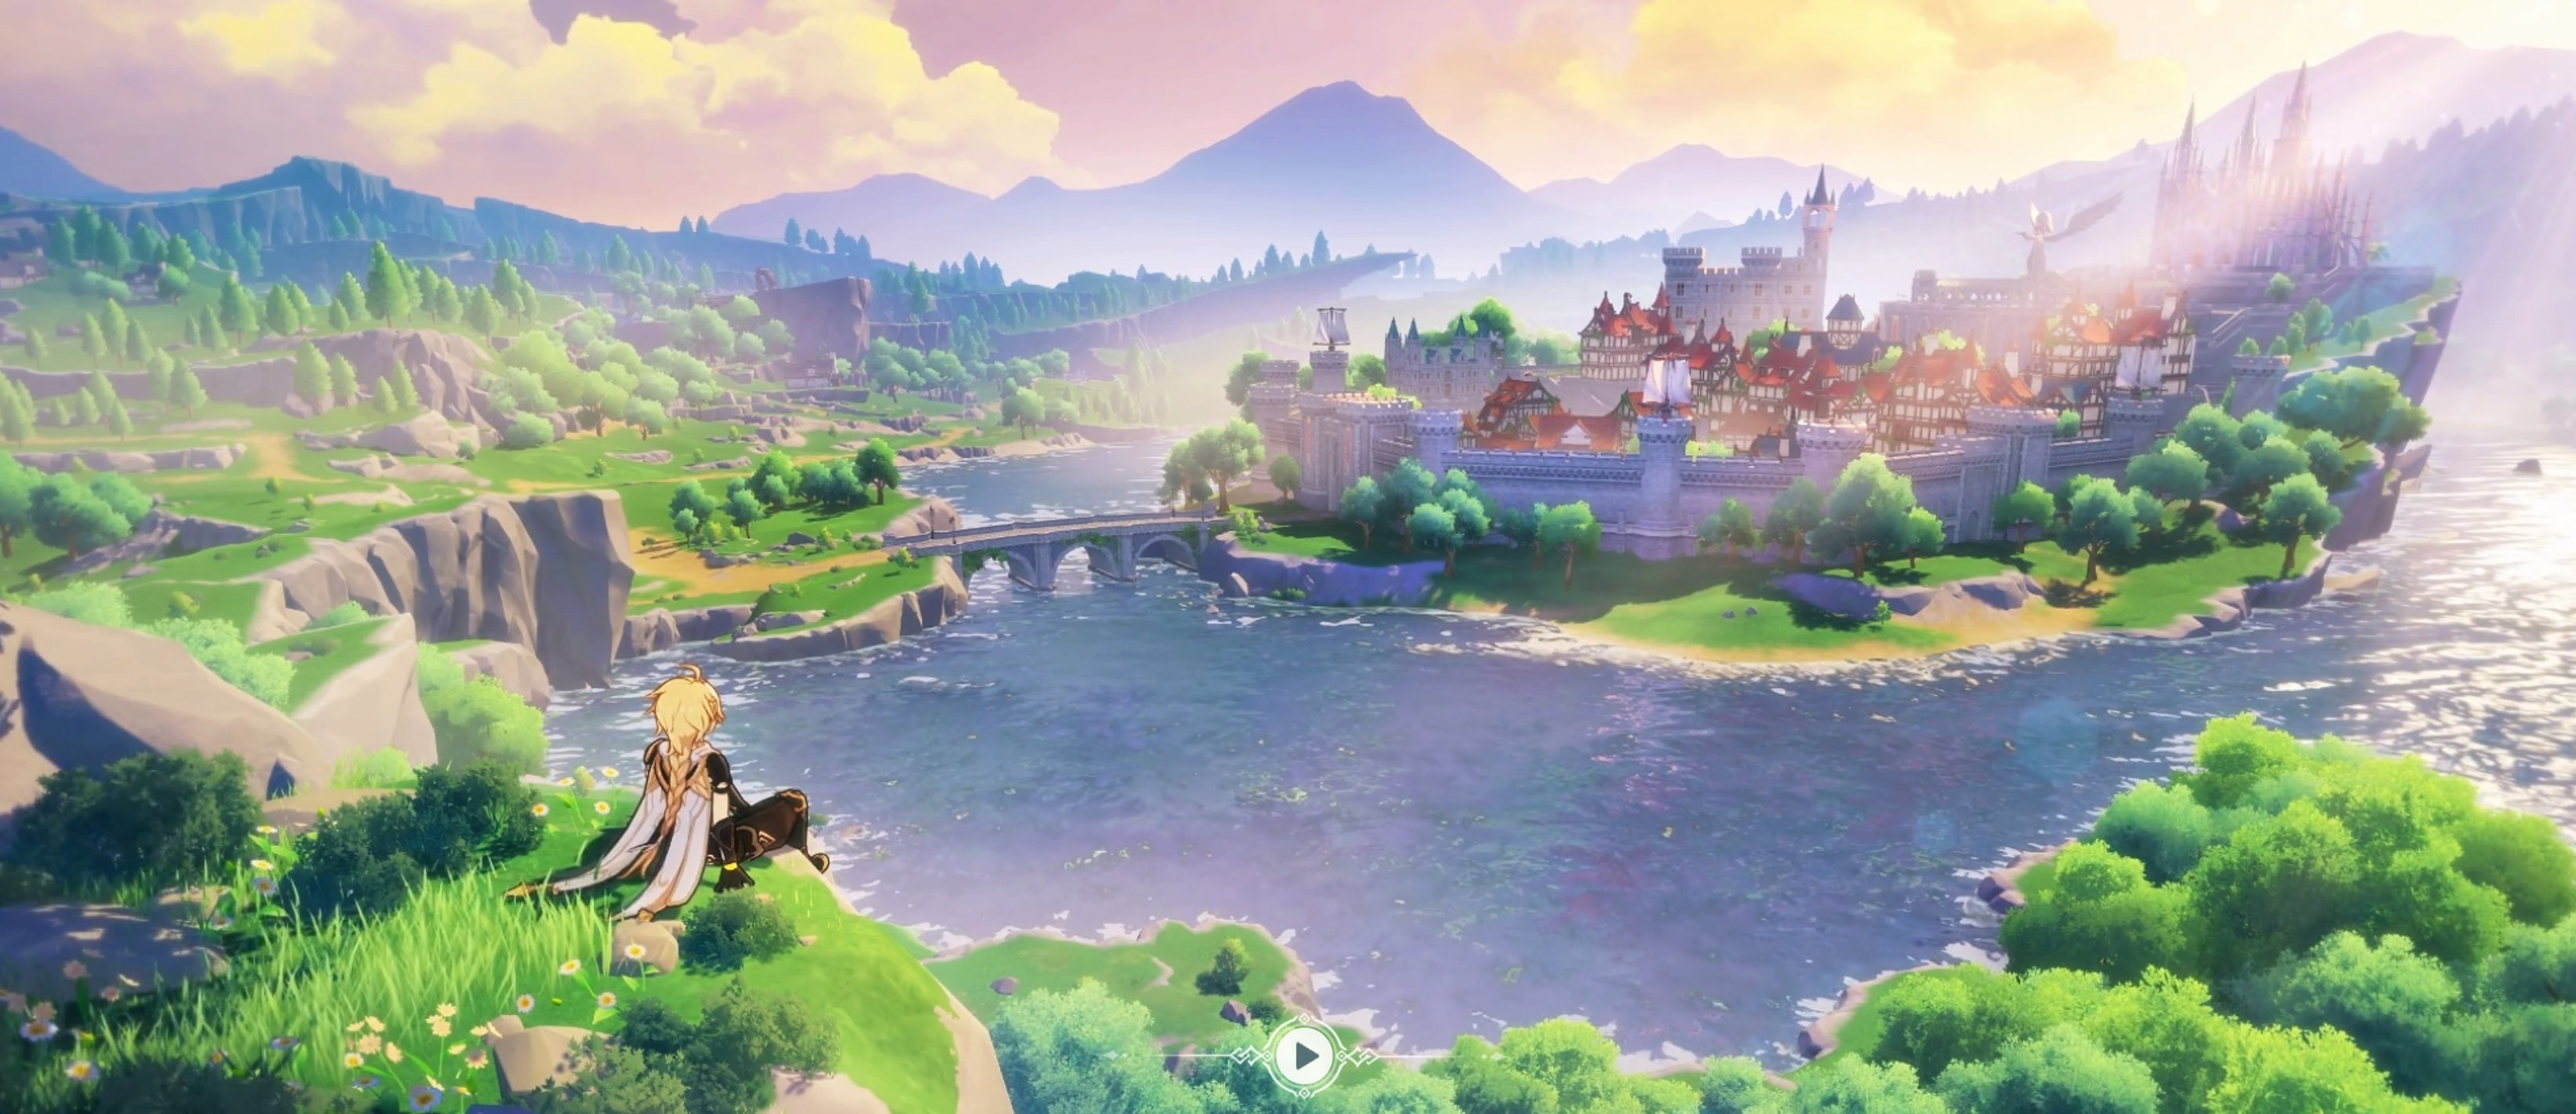 Zelda: Breath of the Wild-inspired RPG Genshin Impact is out next month